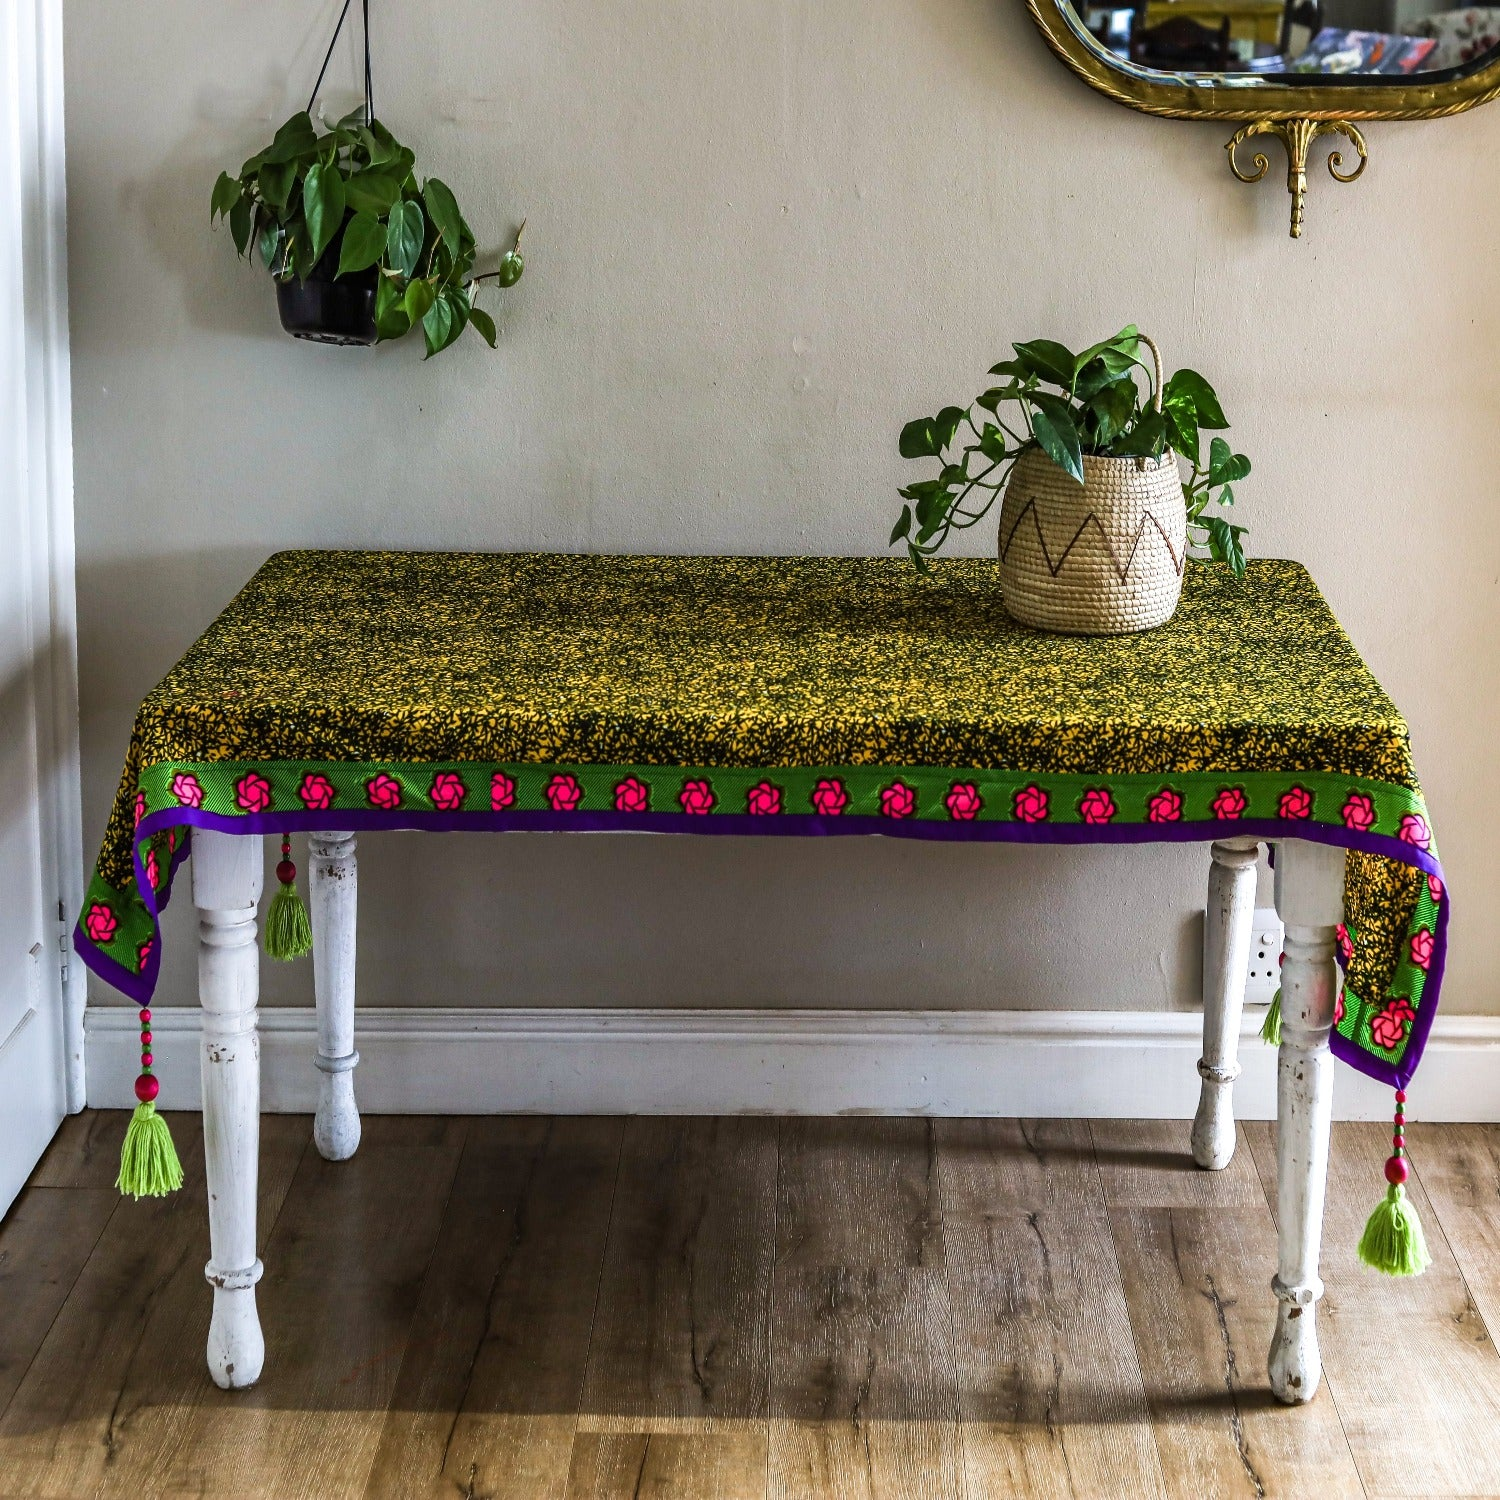 tassled table cloth: foliage